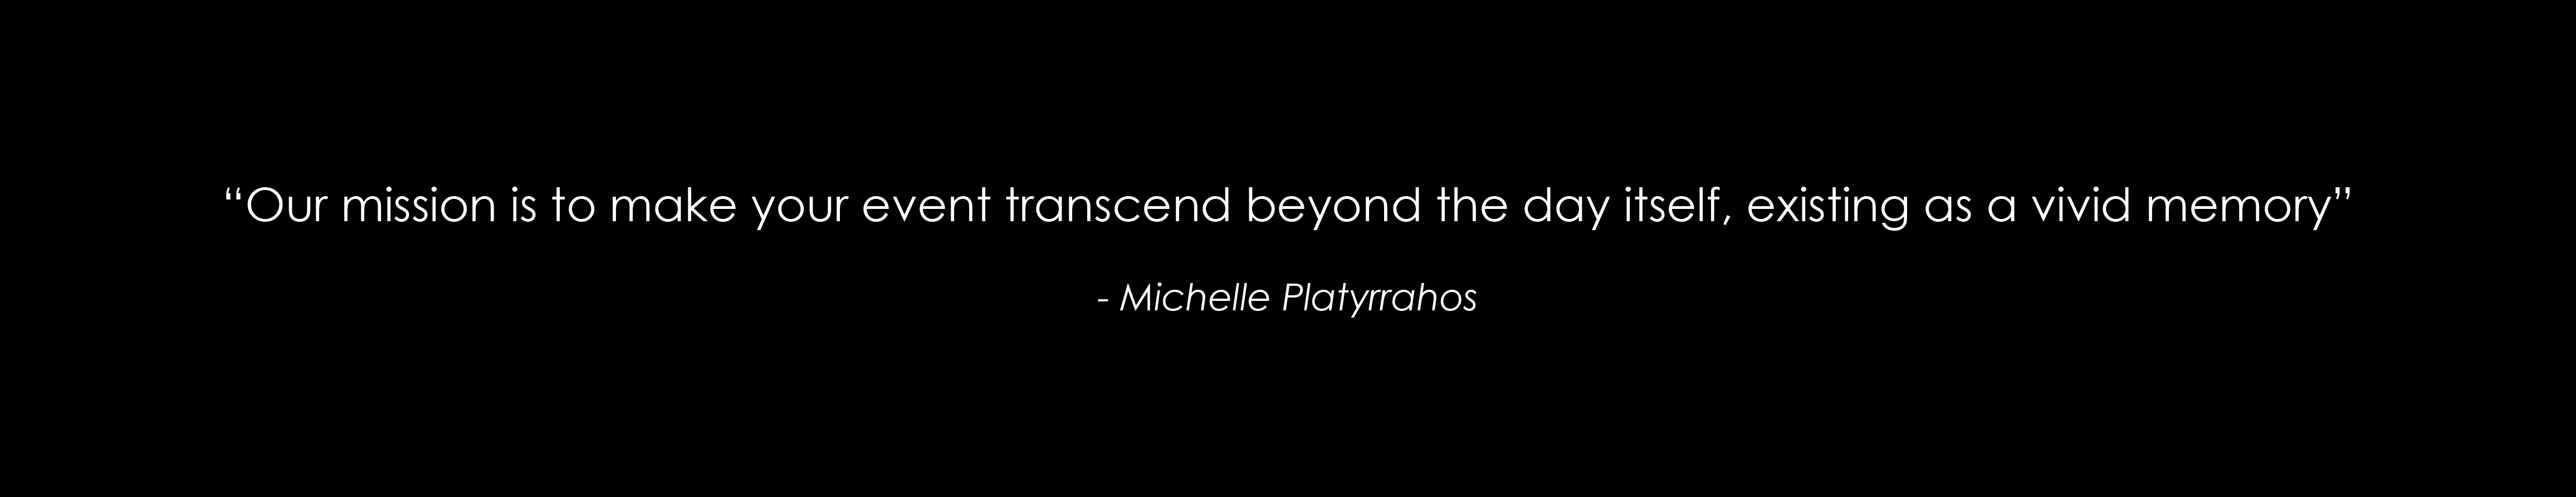 Quote from Director, Michelle Platyrrahos